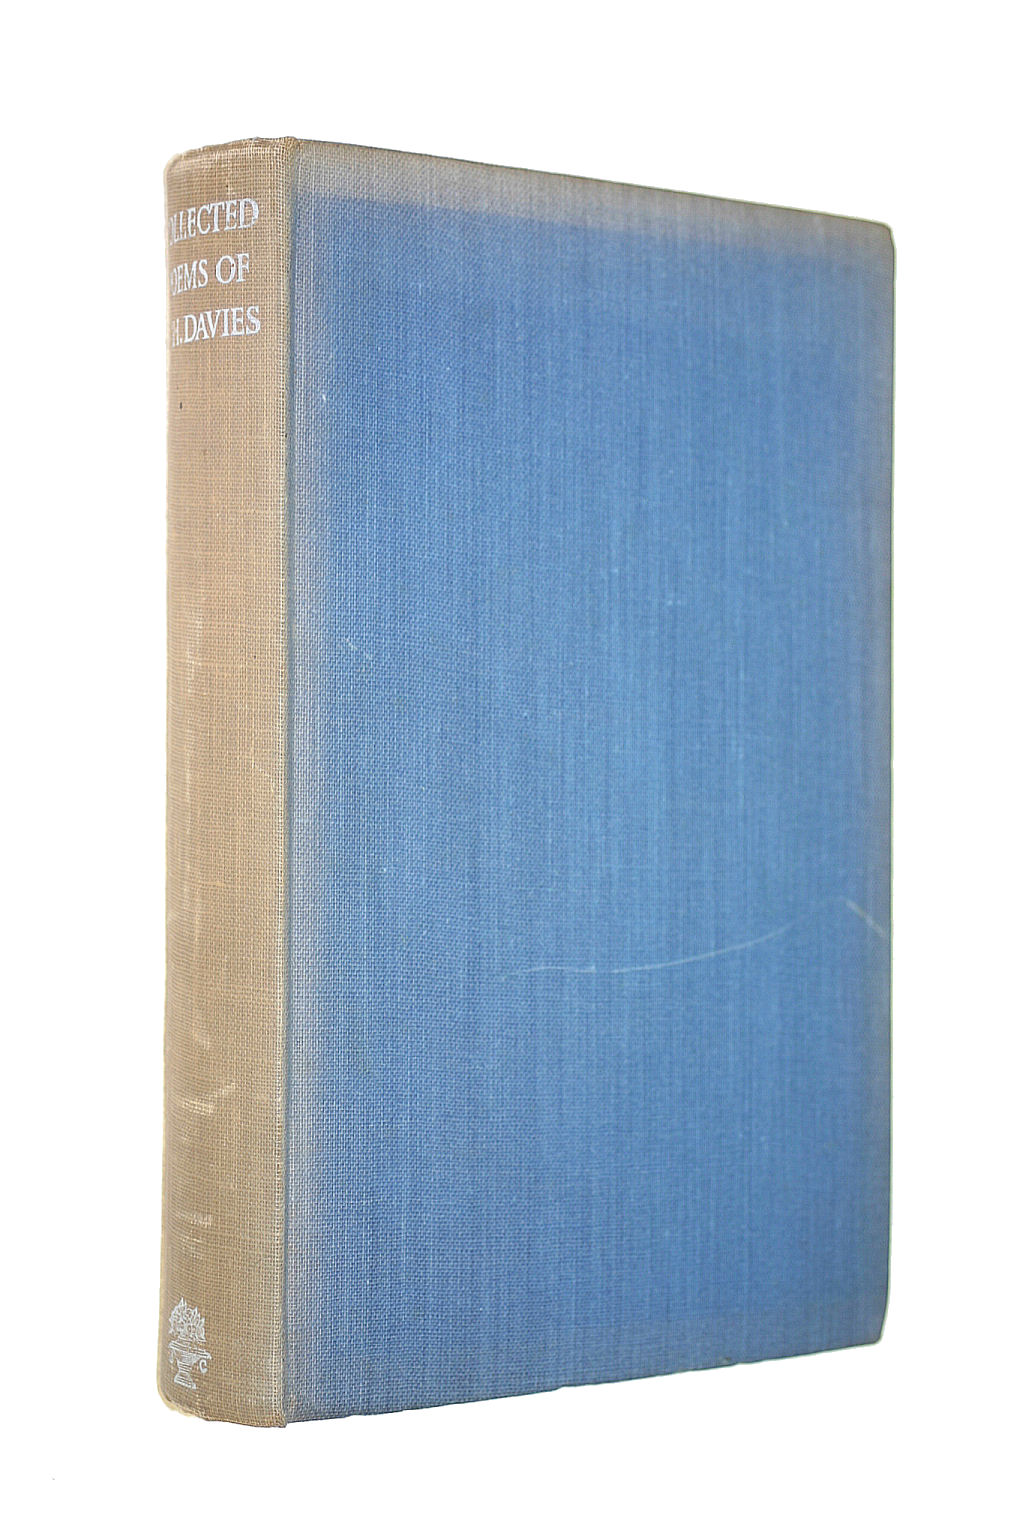 Image for Collected Poems Of W.H.Davies